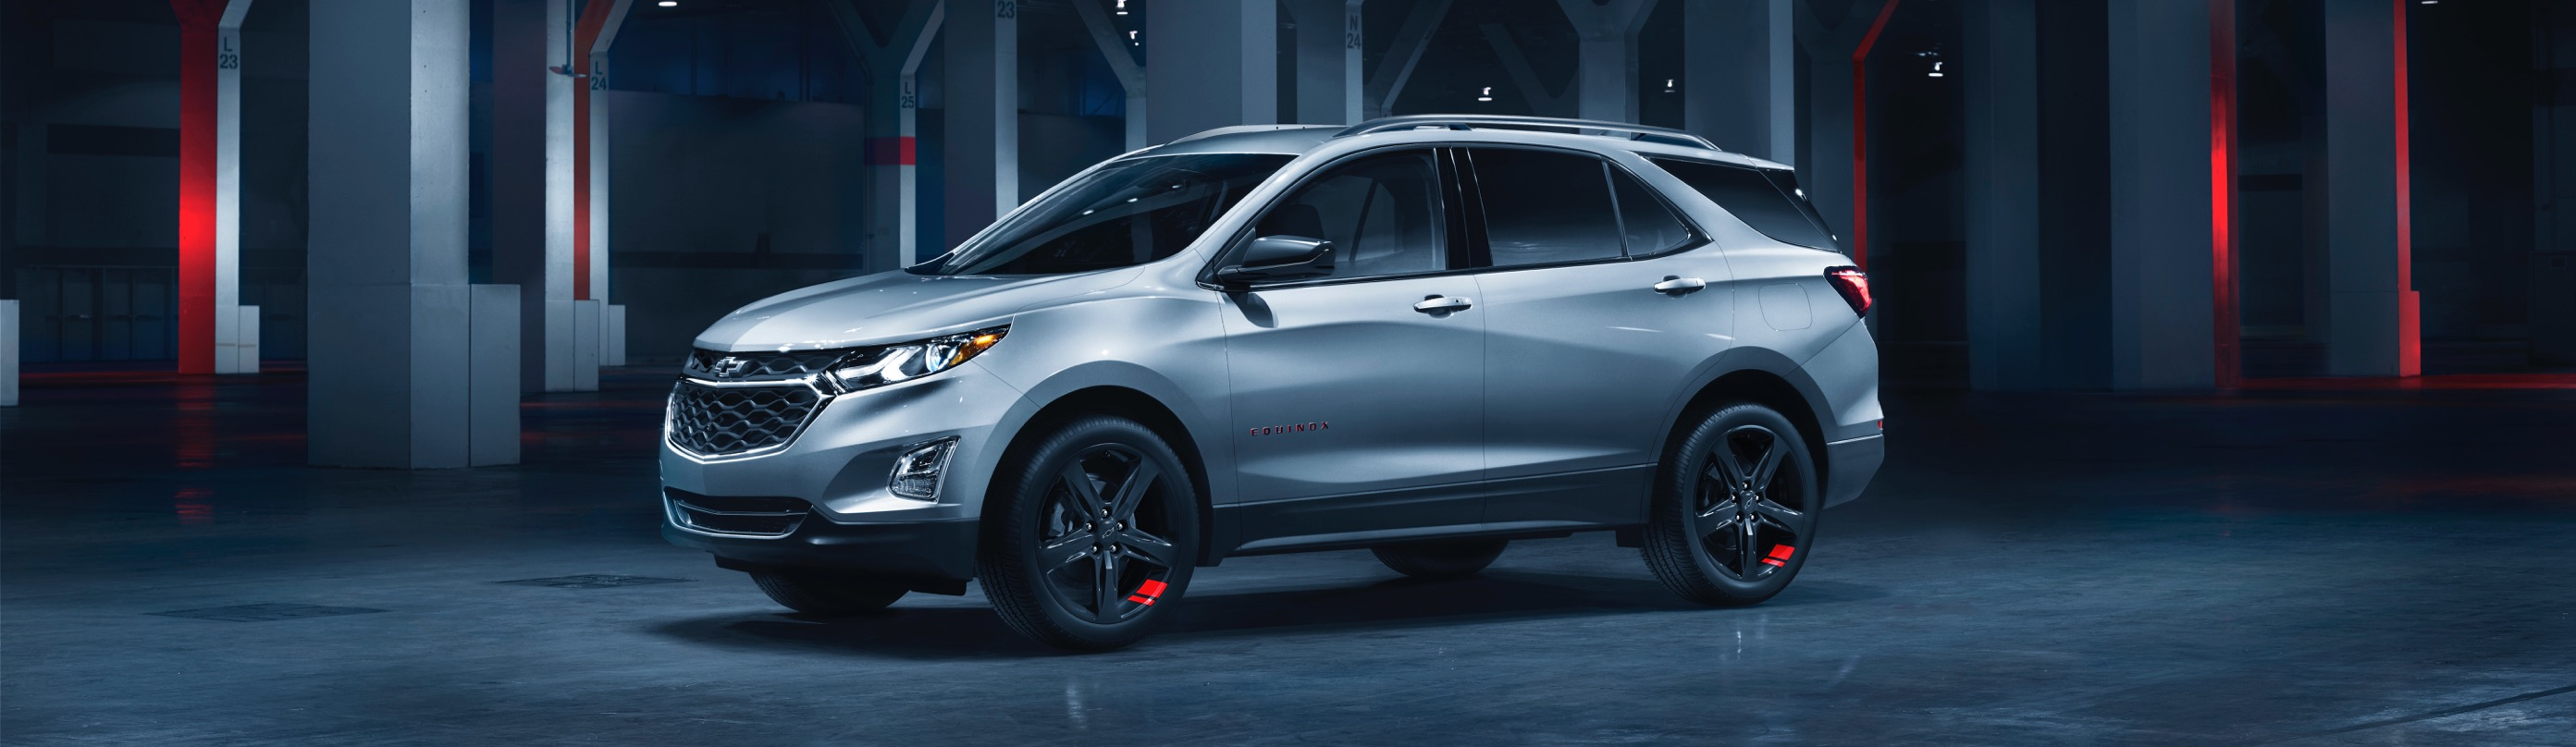 2020 Chevrolet Equinox: Design, Equipment, MPG, Price >> Introducing The New 2020 Chevrolet Equinox